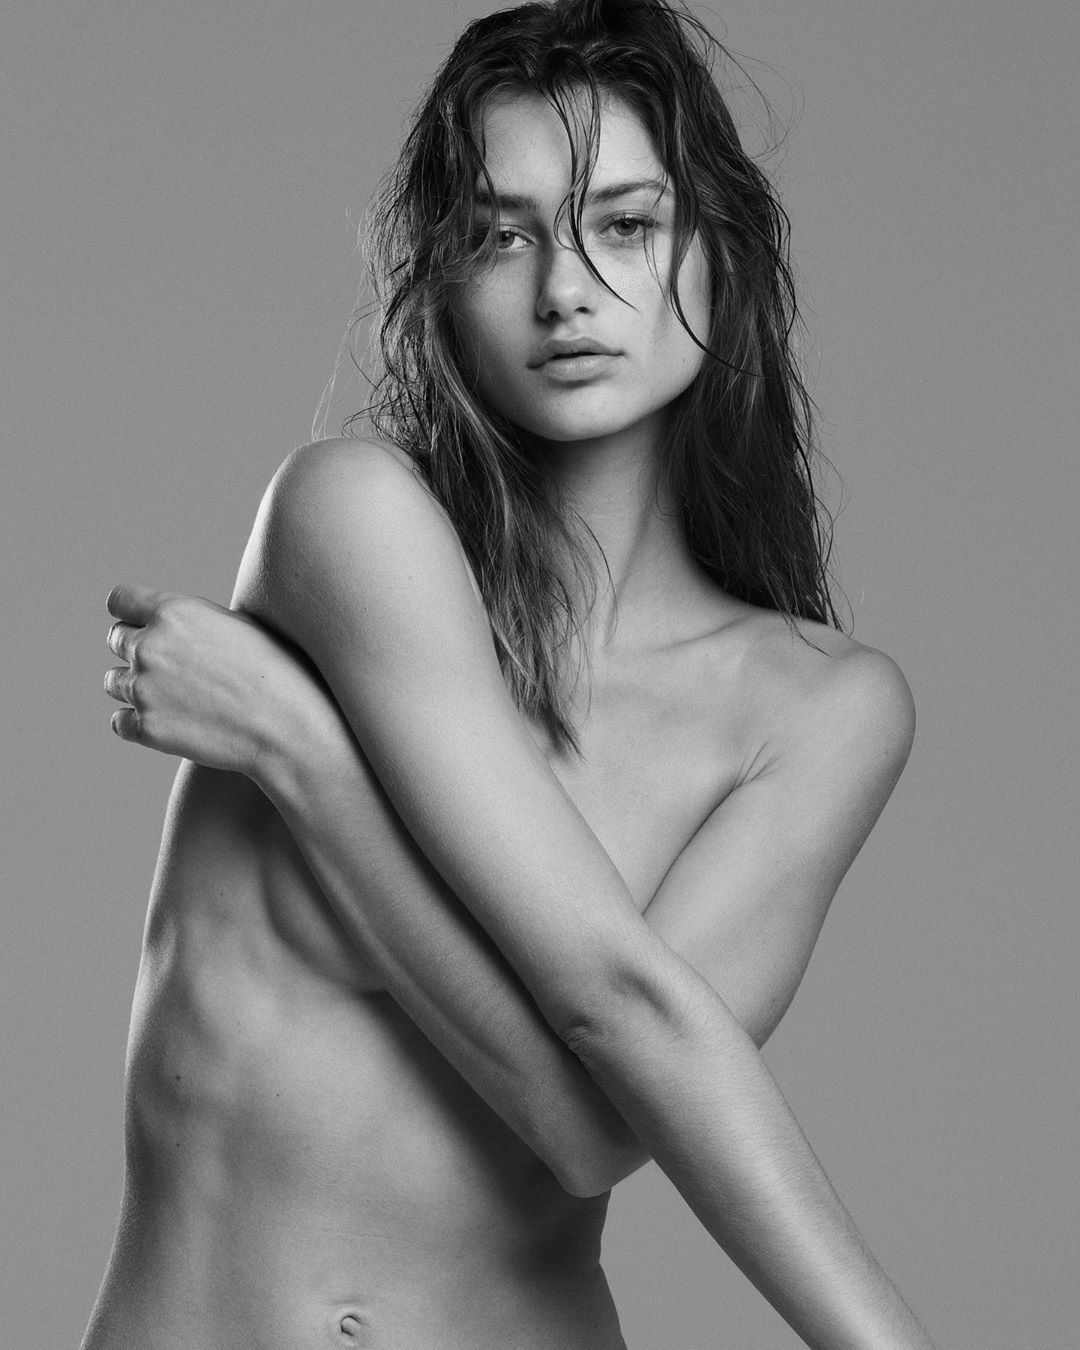 Maelys Garouis by Paul Morel